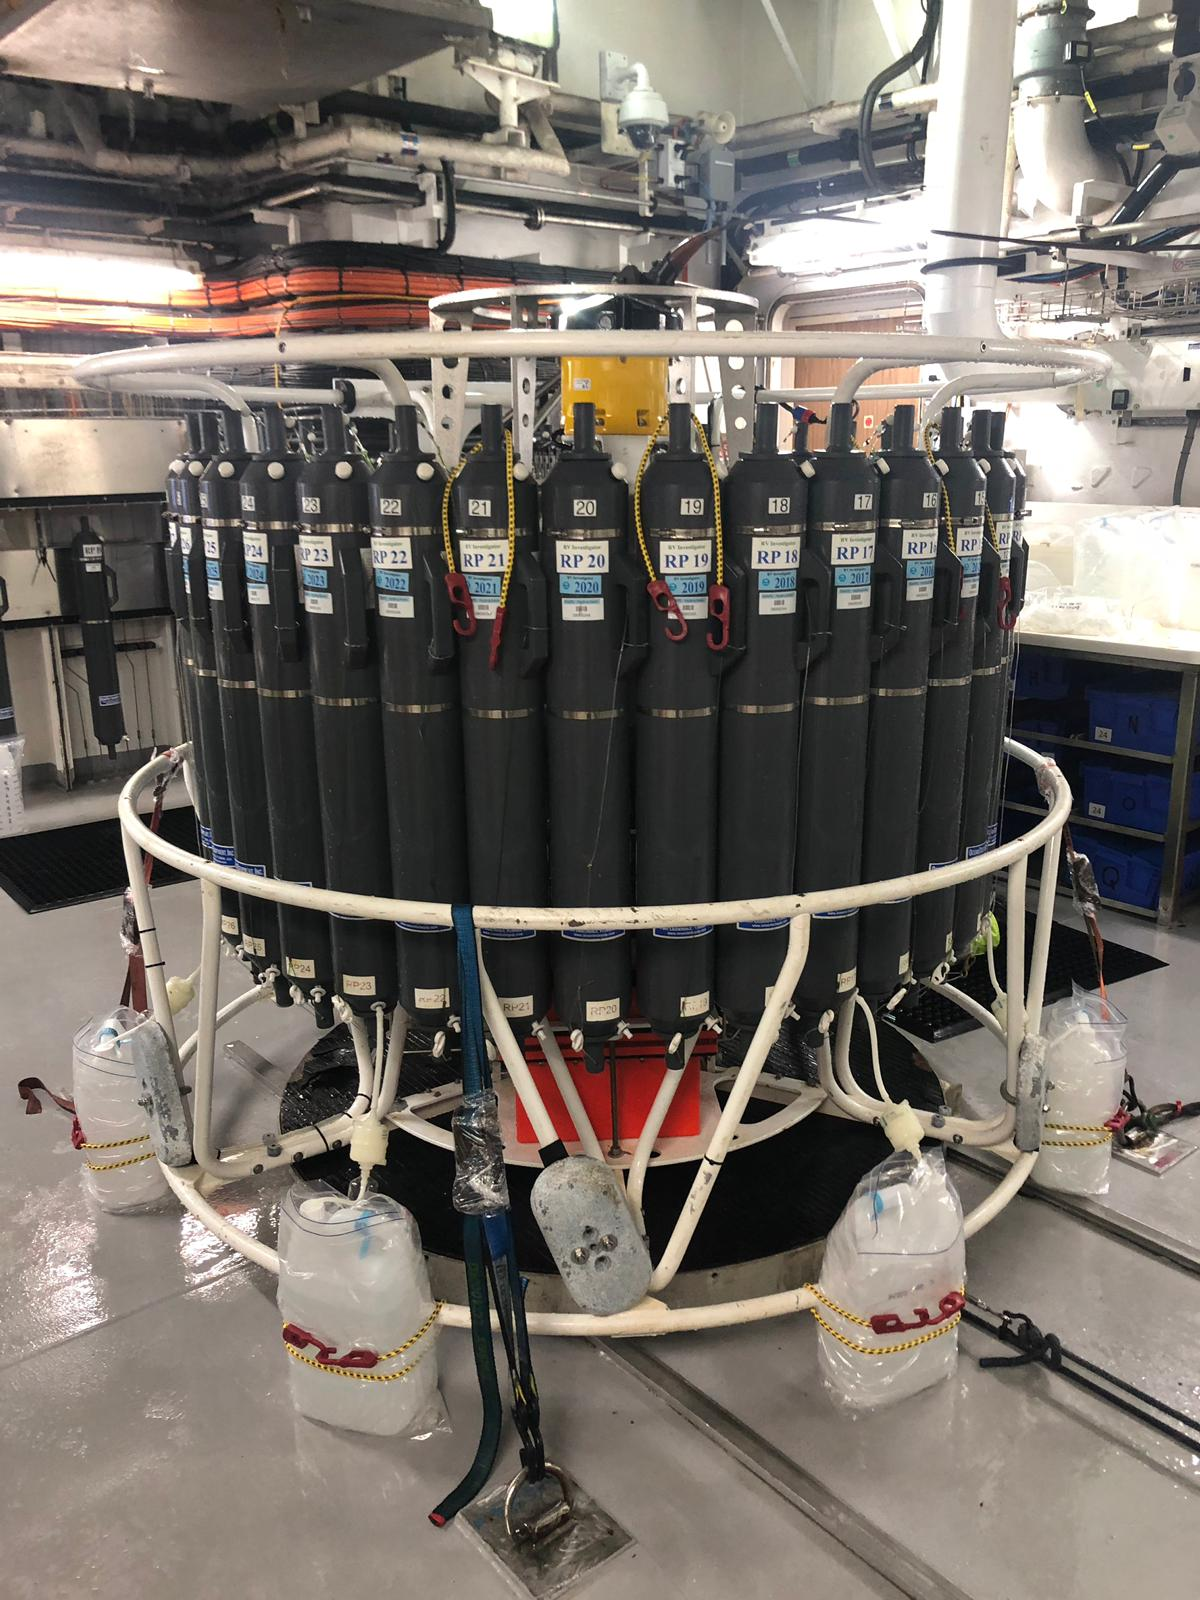 A piece of machinery that explores anaemic oceans. Its a bunch of black bottles in a circle with clear bottles at the bottom.